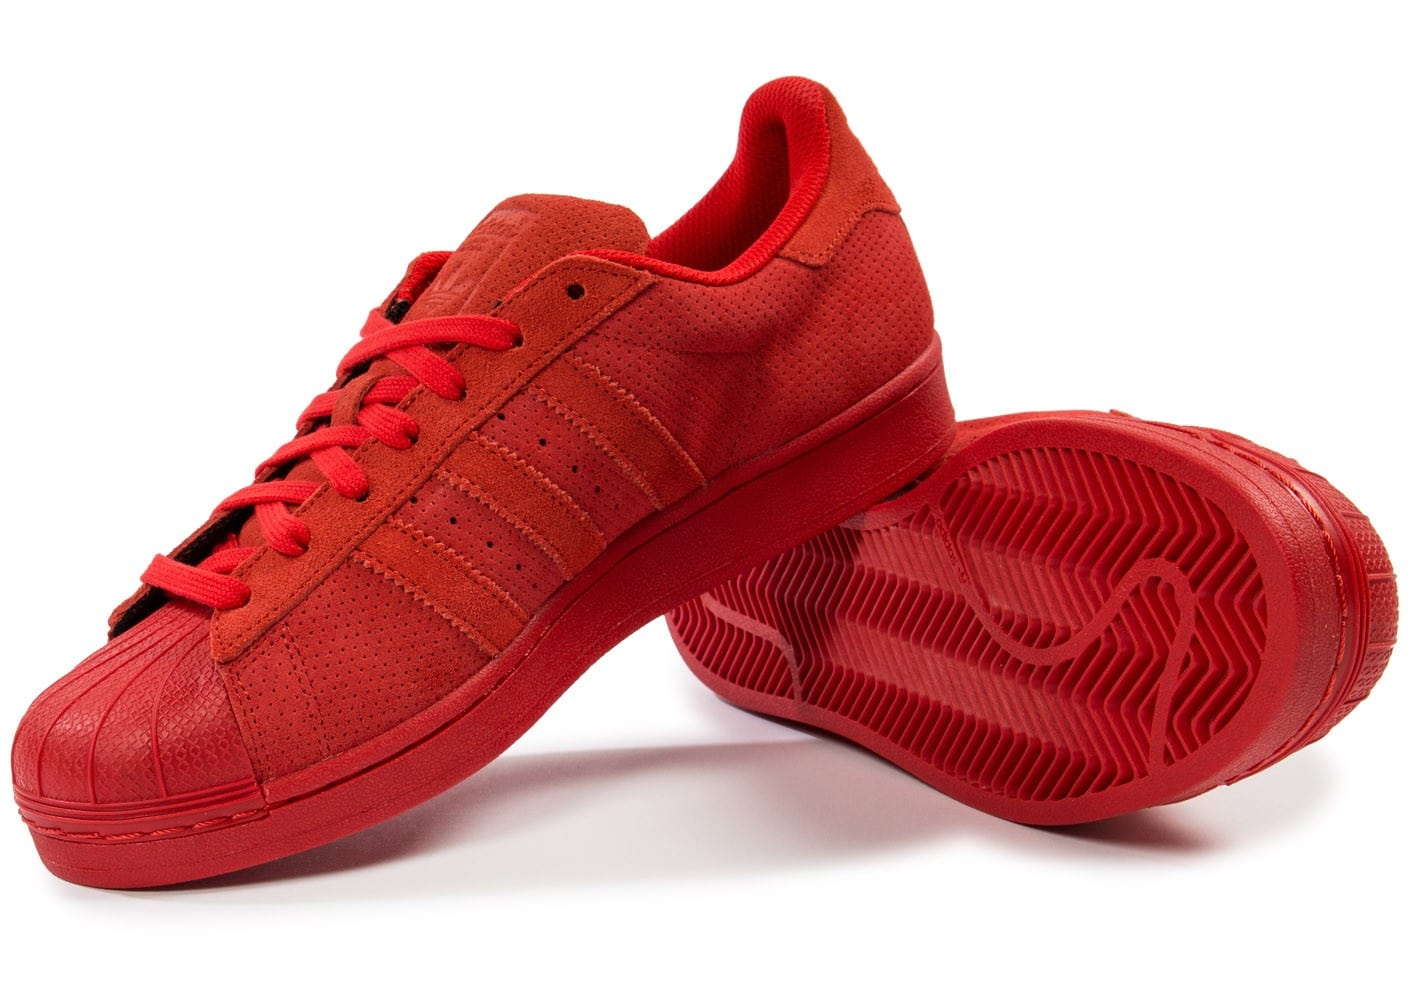 Adidas Superstar Homme Chausport Rouge Chaussures Suede Baskets JKcT1lF